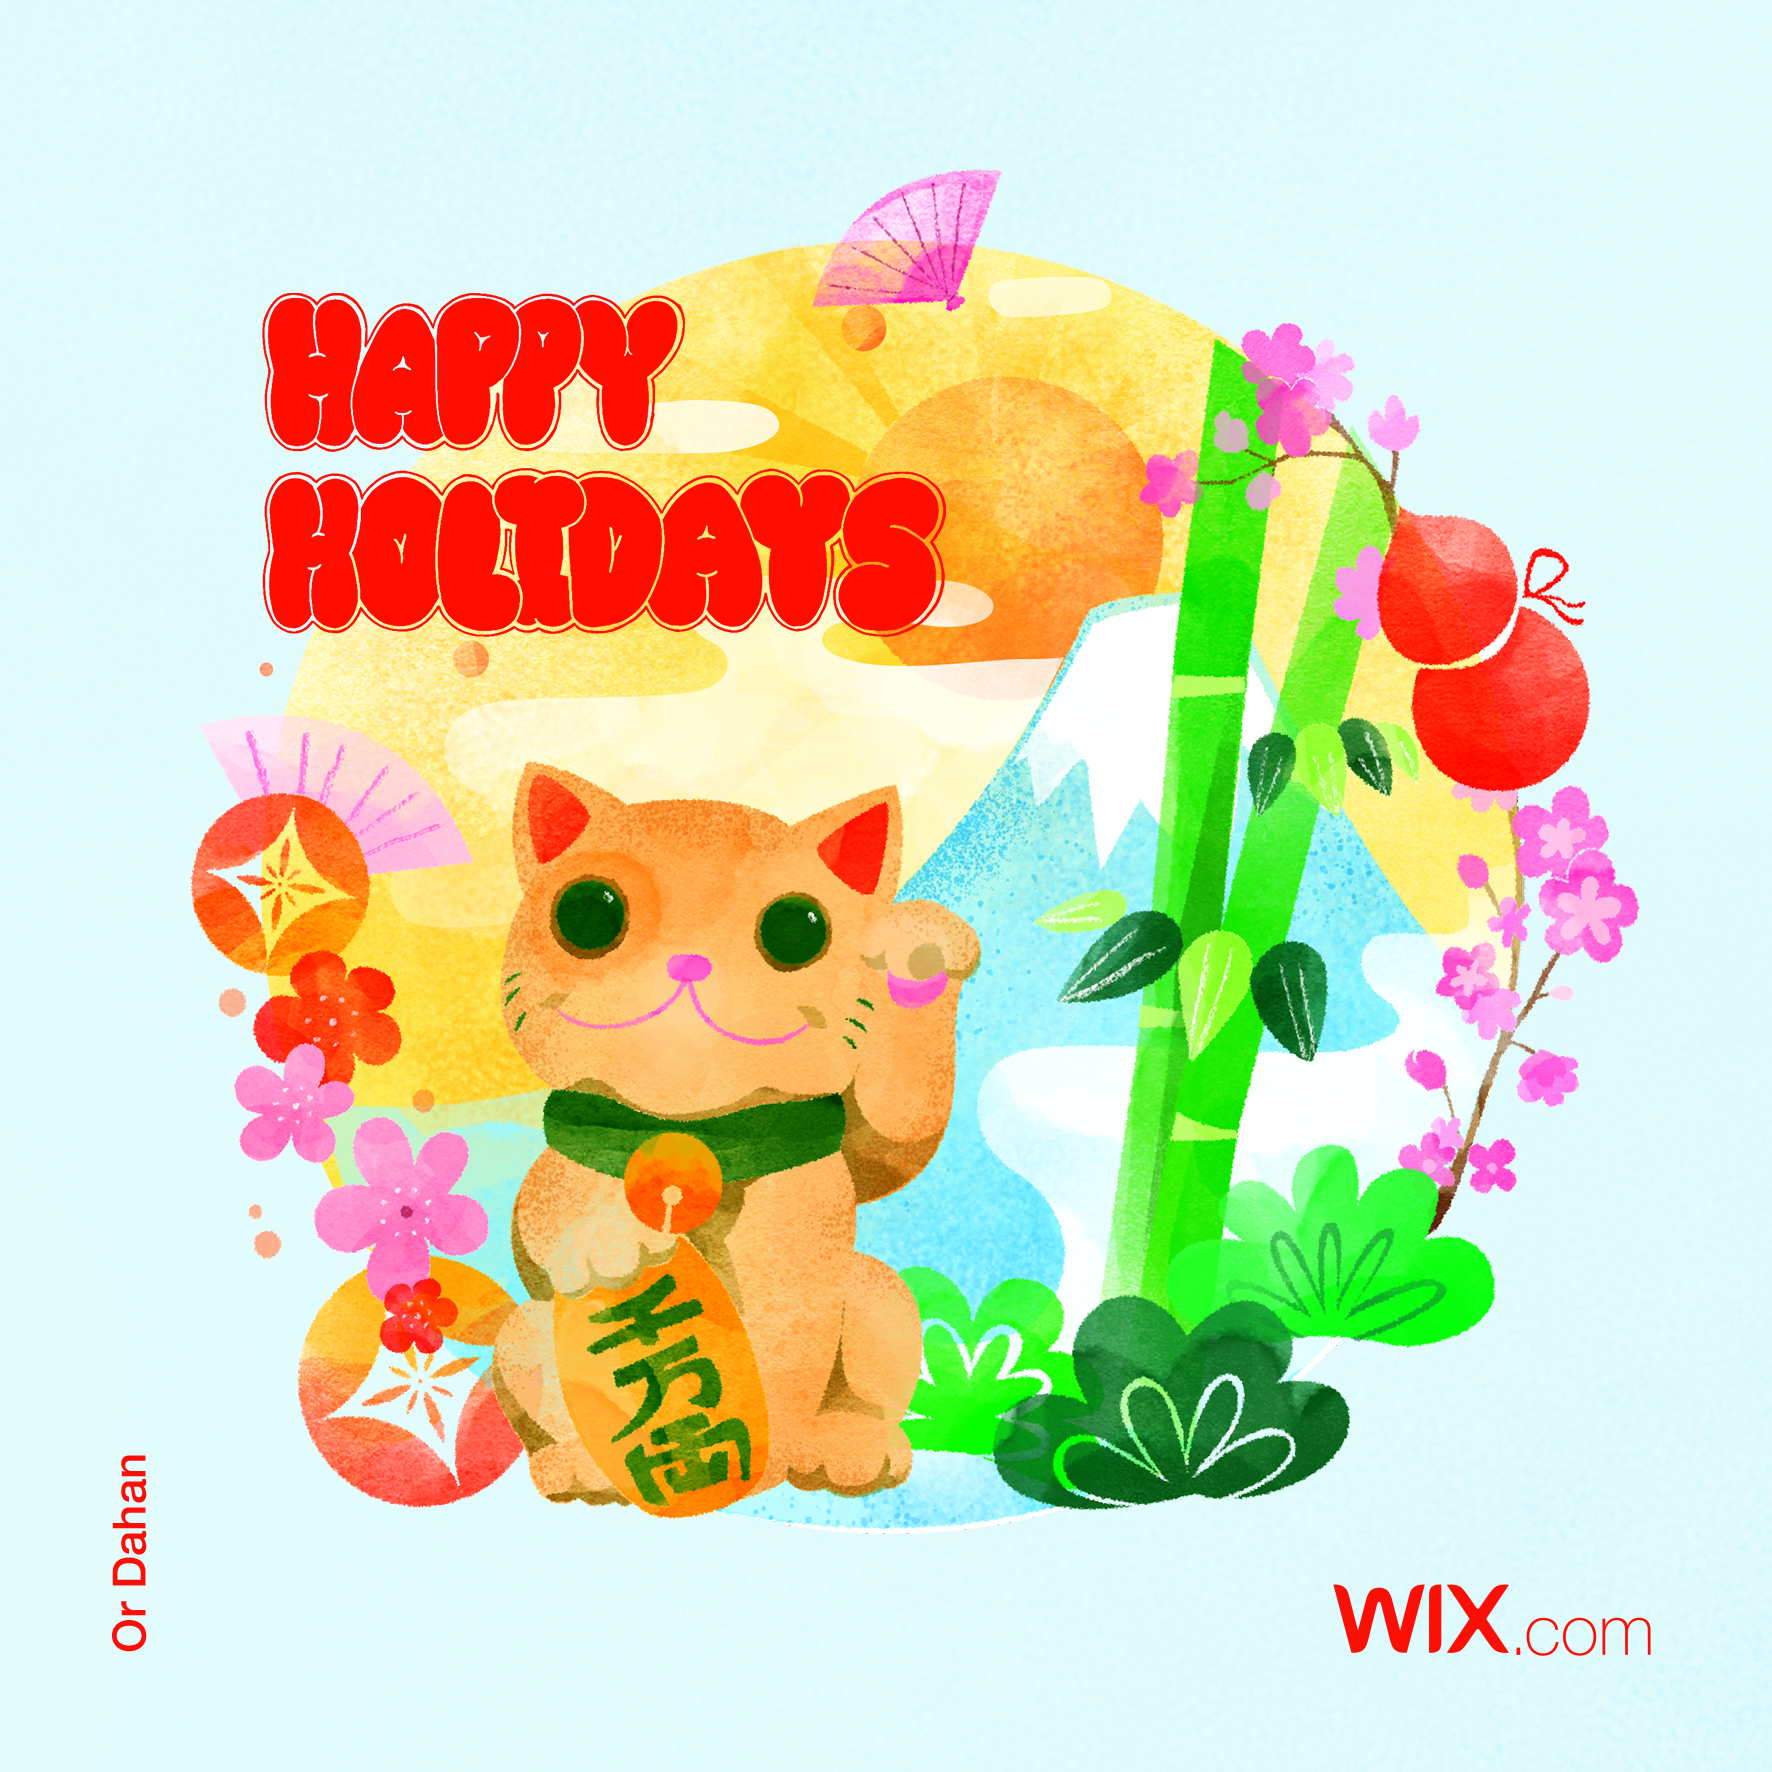 Free online greeting card by Or Dahan